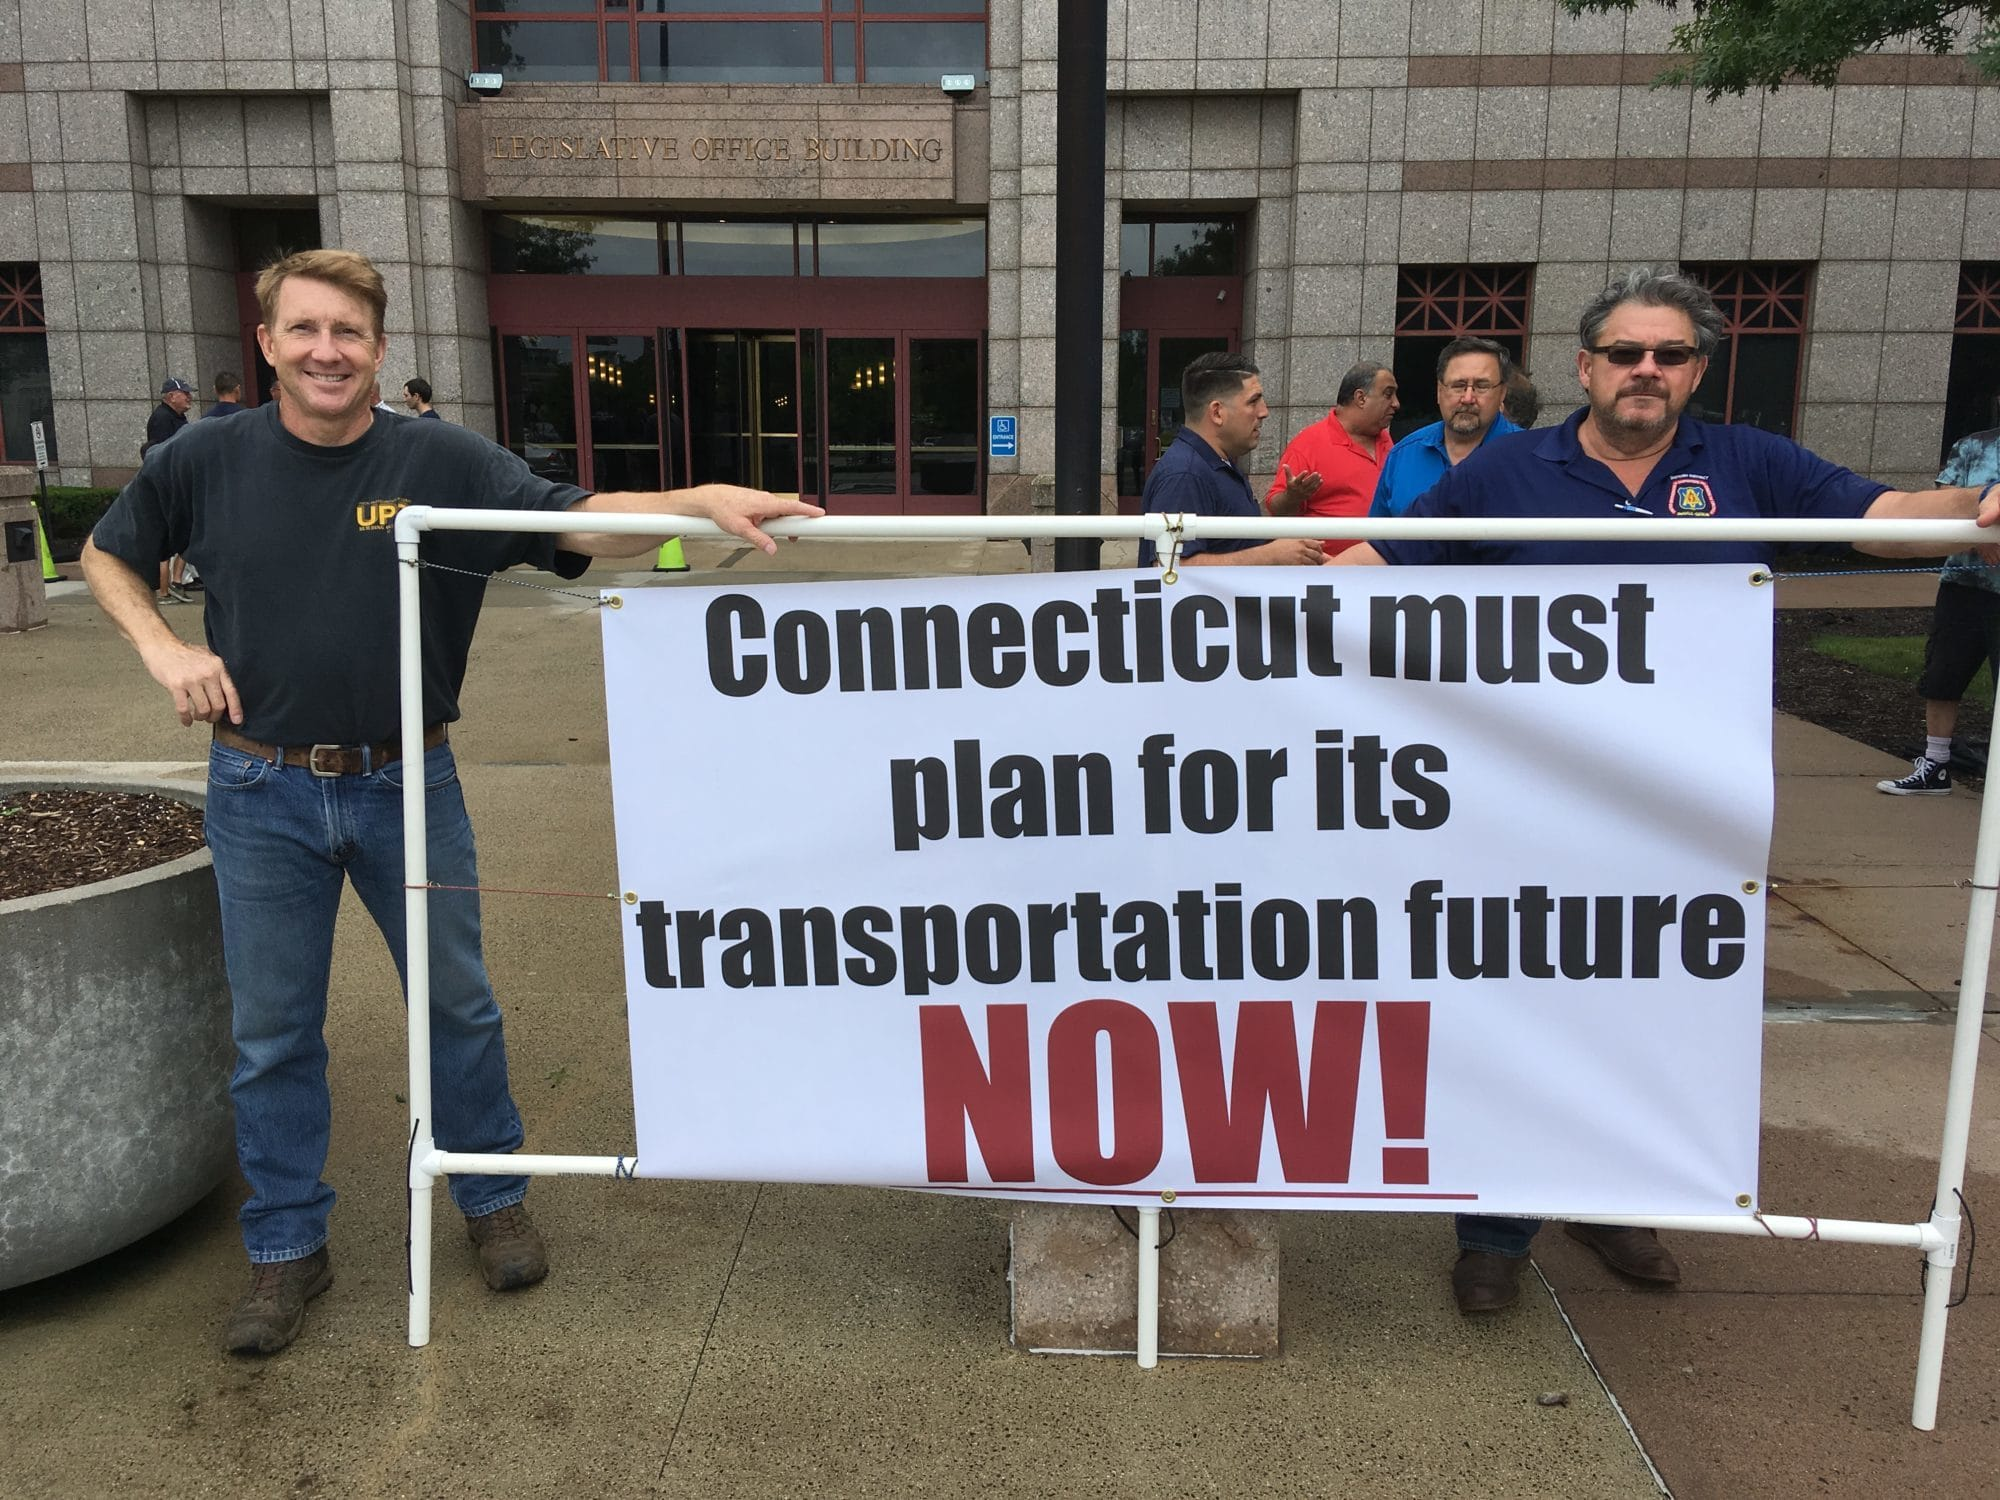 Broken promises to fund transportation defined last 15 years